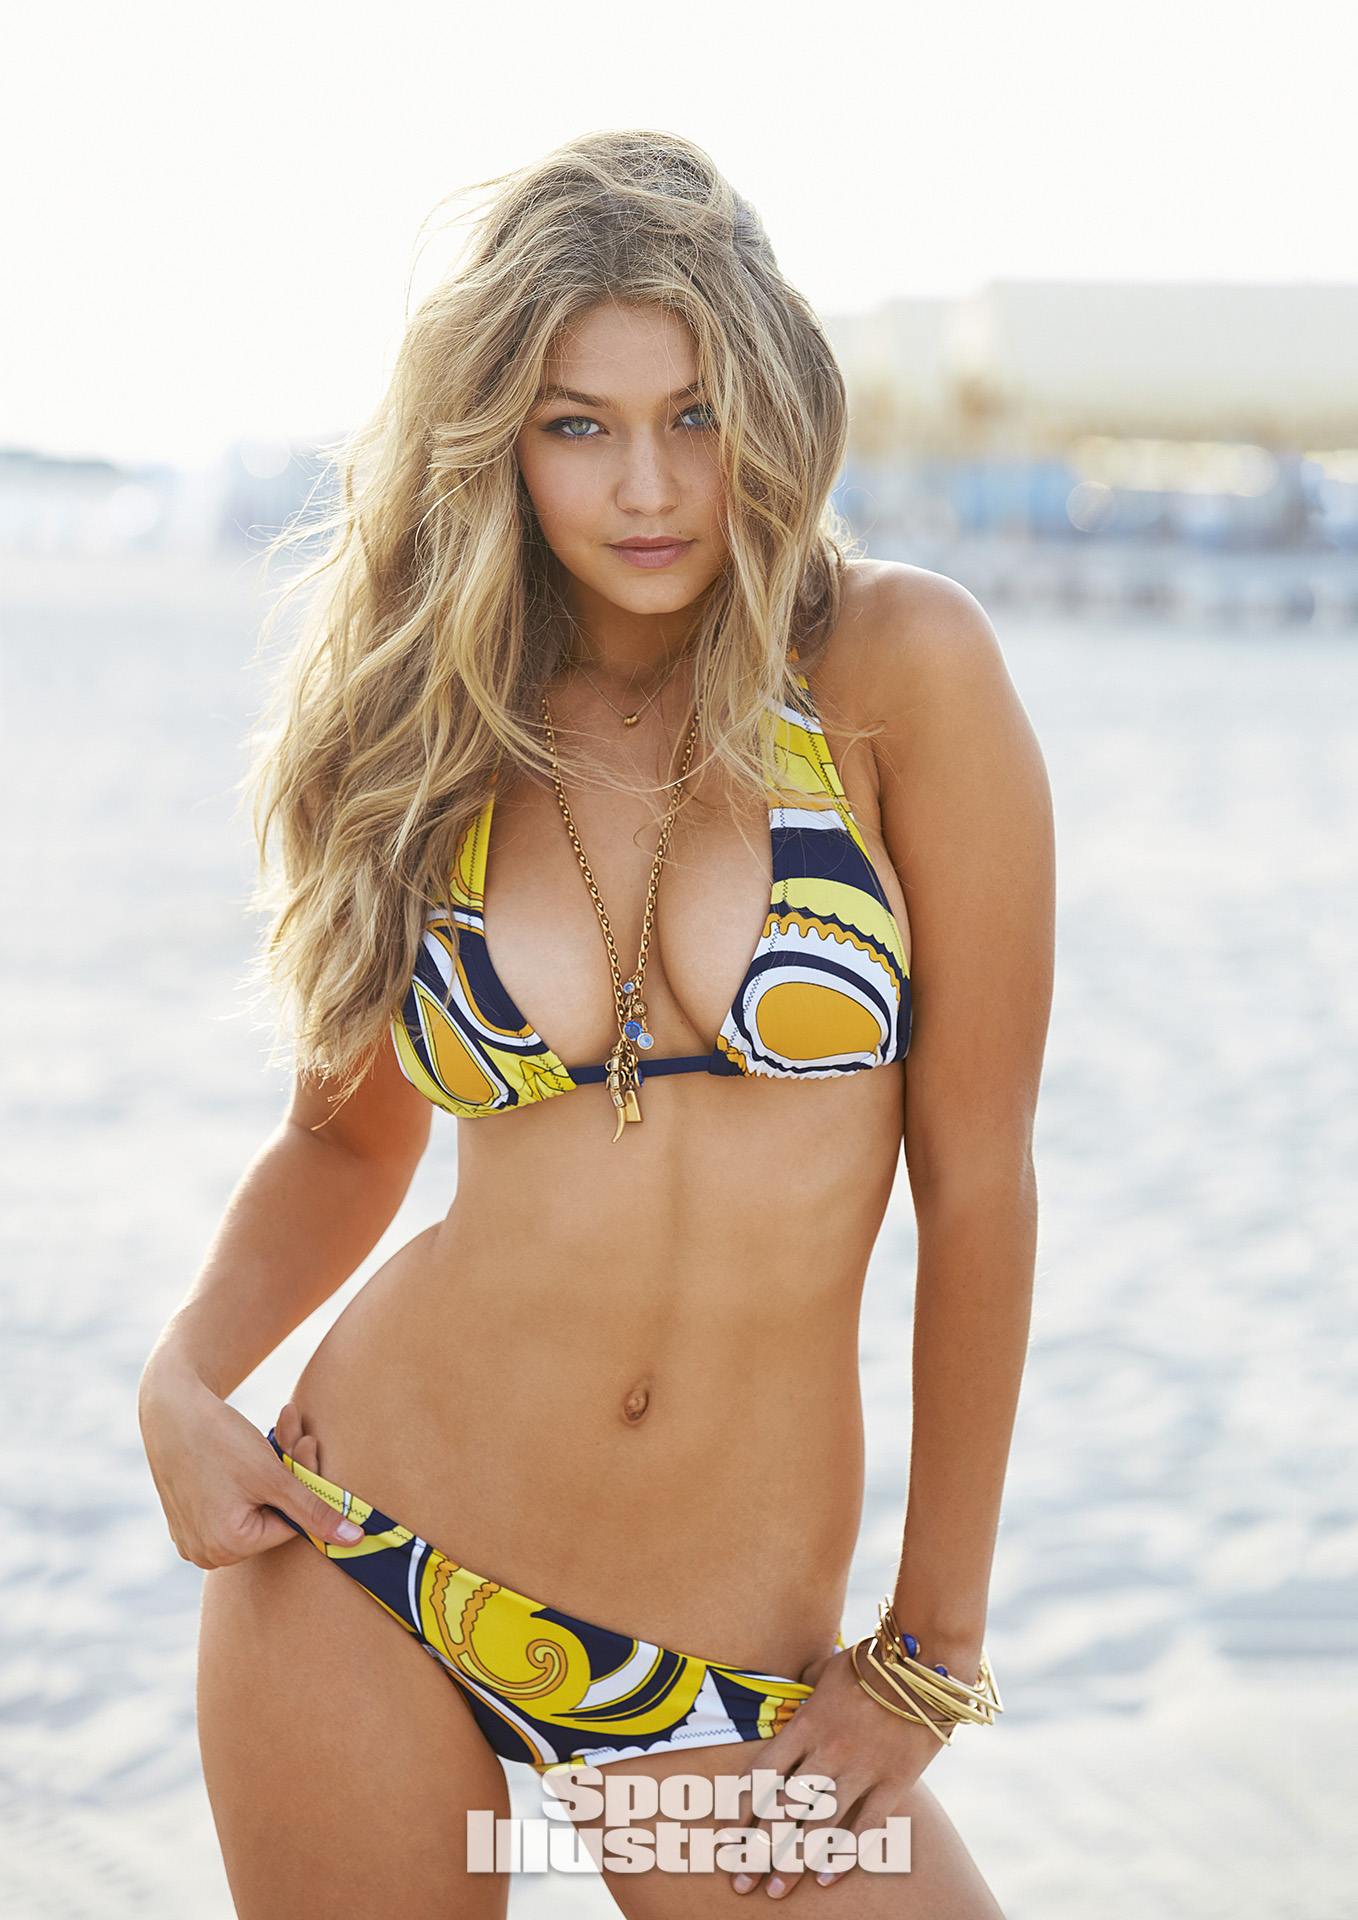 Gigi hadid 2014 swimsuit photo gallery for Best online photo gallery